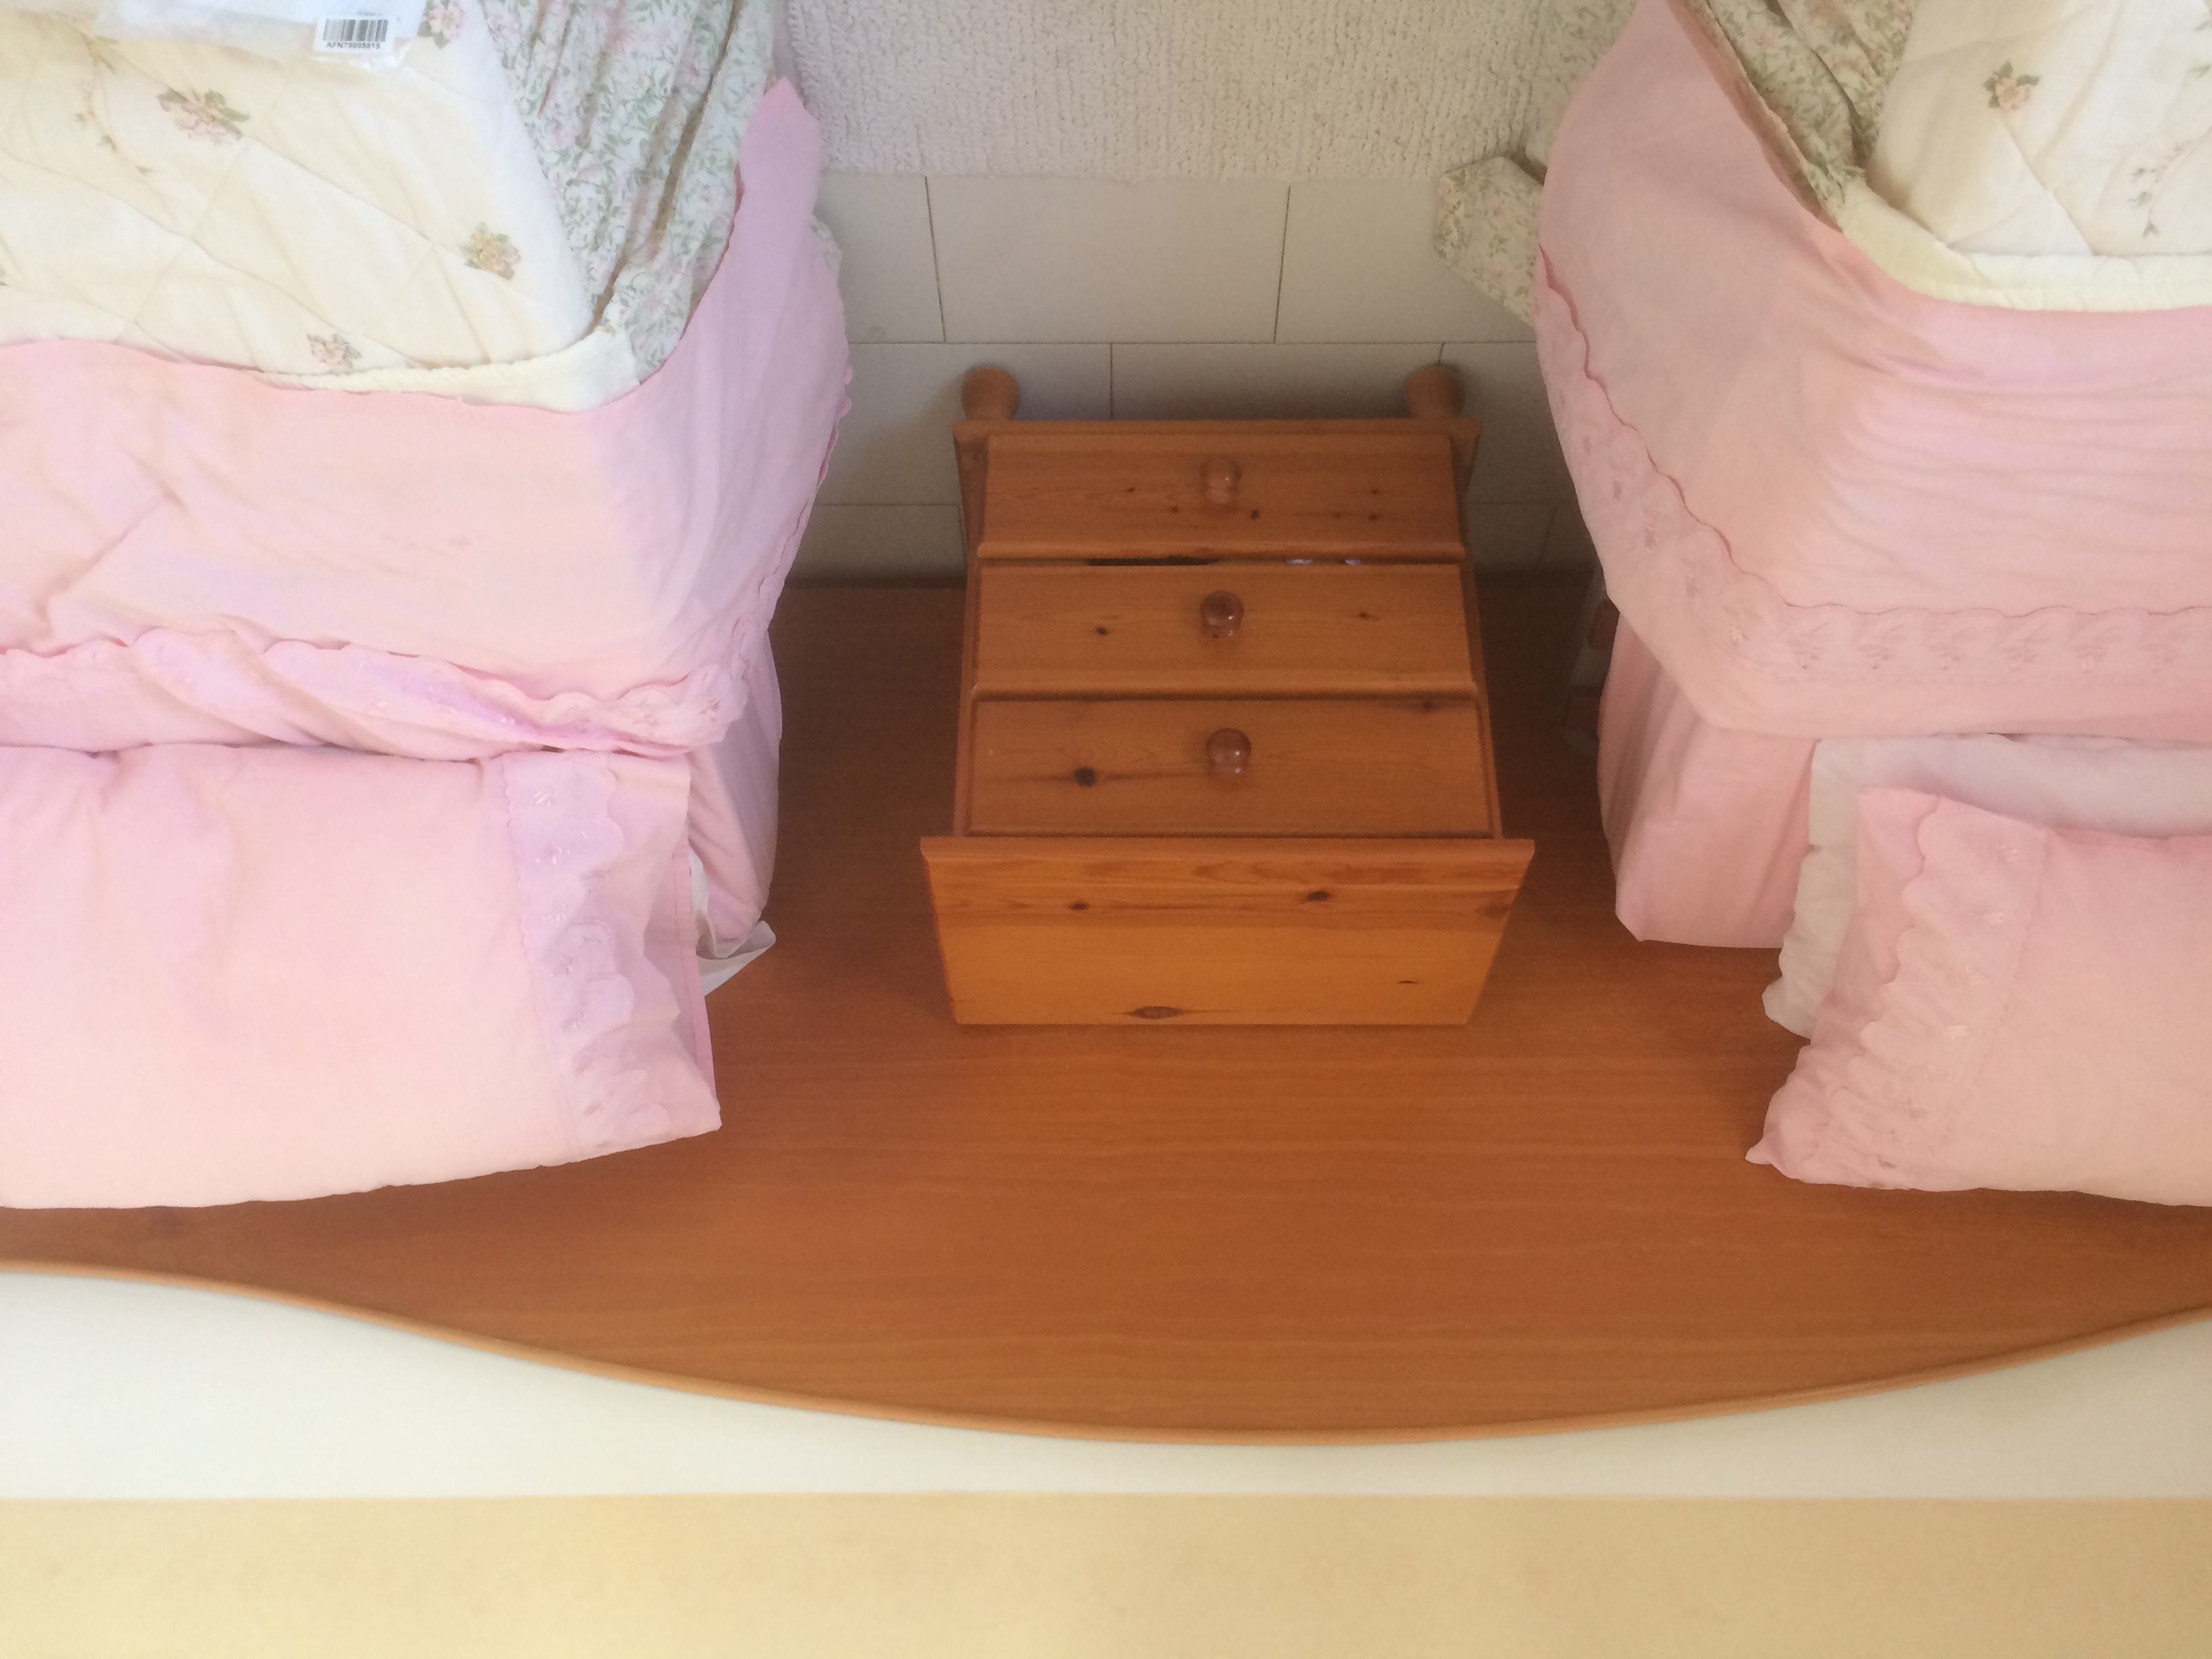 For sale: 2 single beds, headboard and bedside cabinet